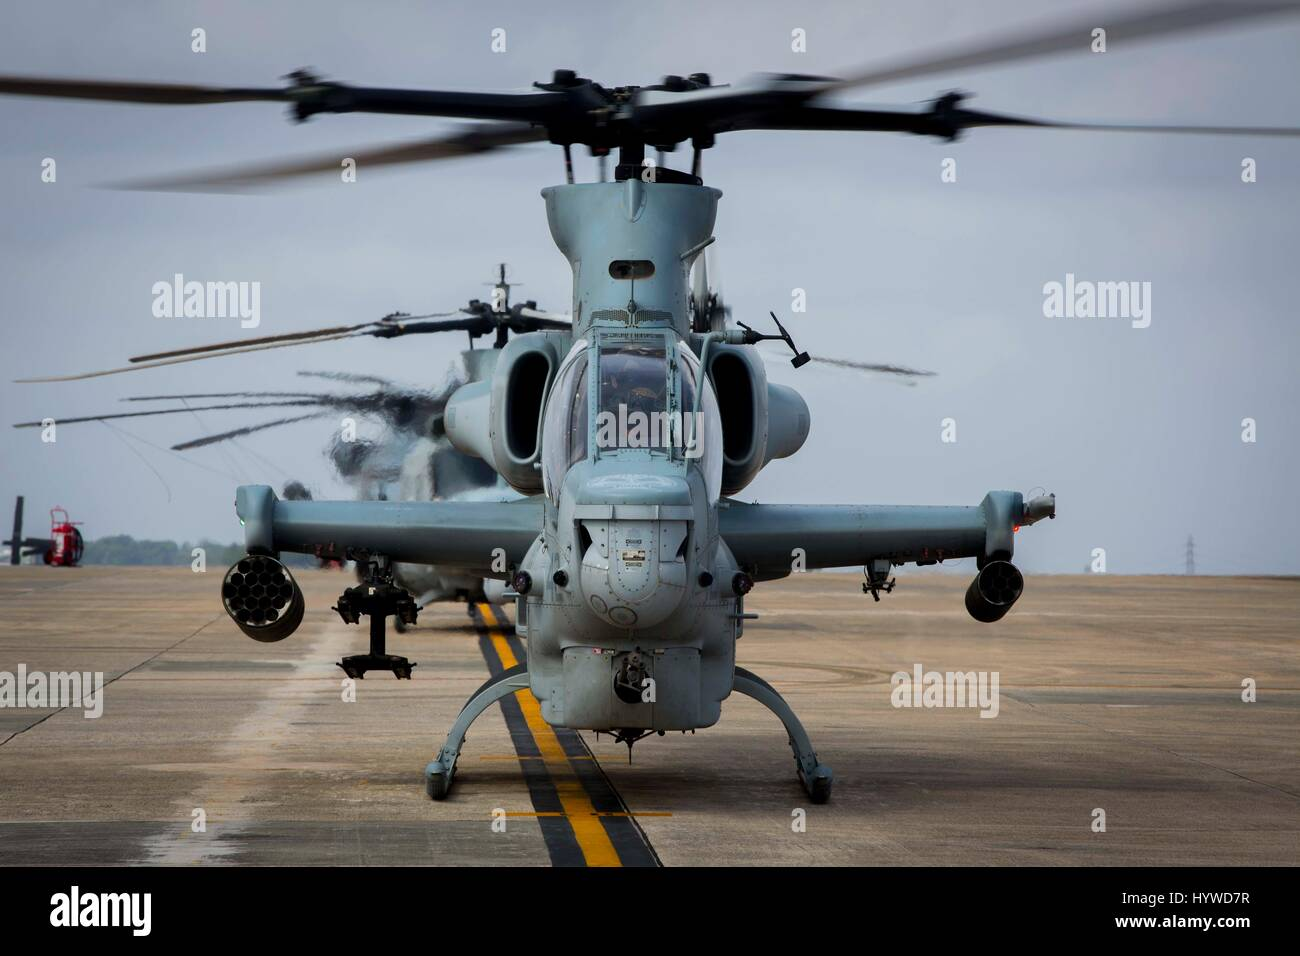 Owinawa, Japan. 26th Apr, 2017. A U.S. Marine Corps AH-1W Super Cobra attack helicopters begin pre-flight checks, prior to a Mission Rehearsal Exercise at Marine Corps Air Station Futenma April 26, 2017 in Okinawa, Japan. U.S. Forces across the Asian region have increased combat exercises as tensions continue to rise between the U.S. and North Korea. Credit: Planetpix/Alamy Live News Stock Photo